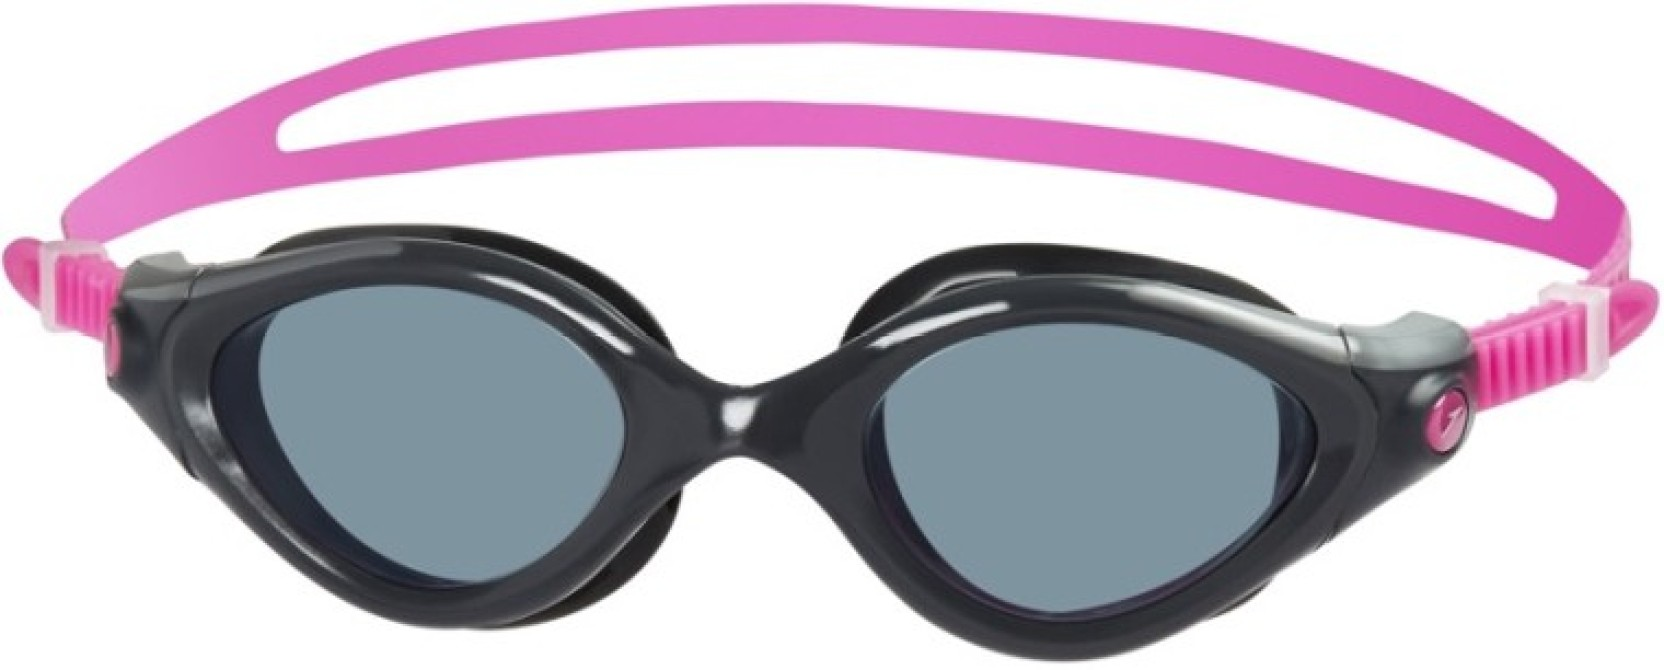 dbe4a5161d5 Speedo Female - Adult Futura BioFUSE Swimming Goggles. ADD TO CART. BUY NOW